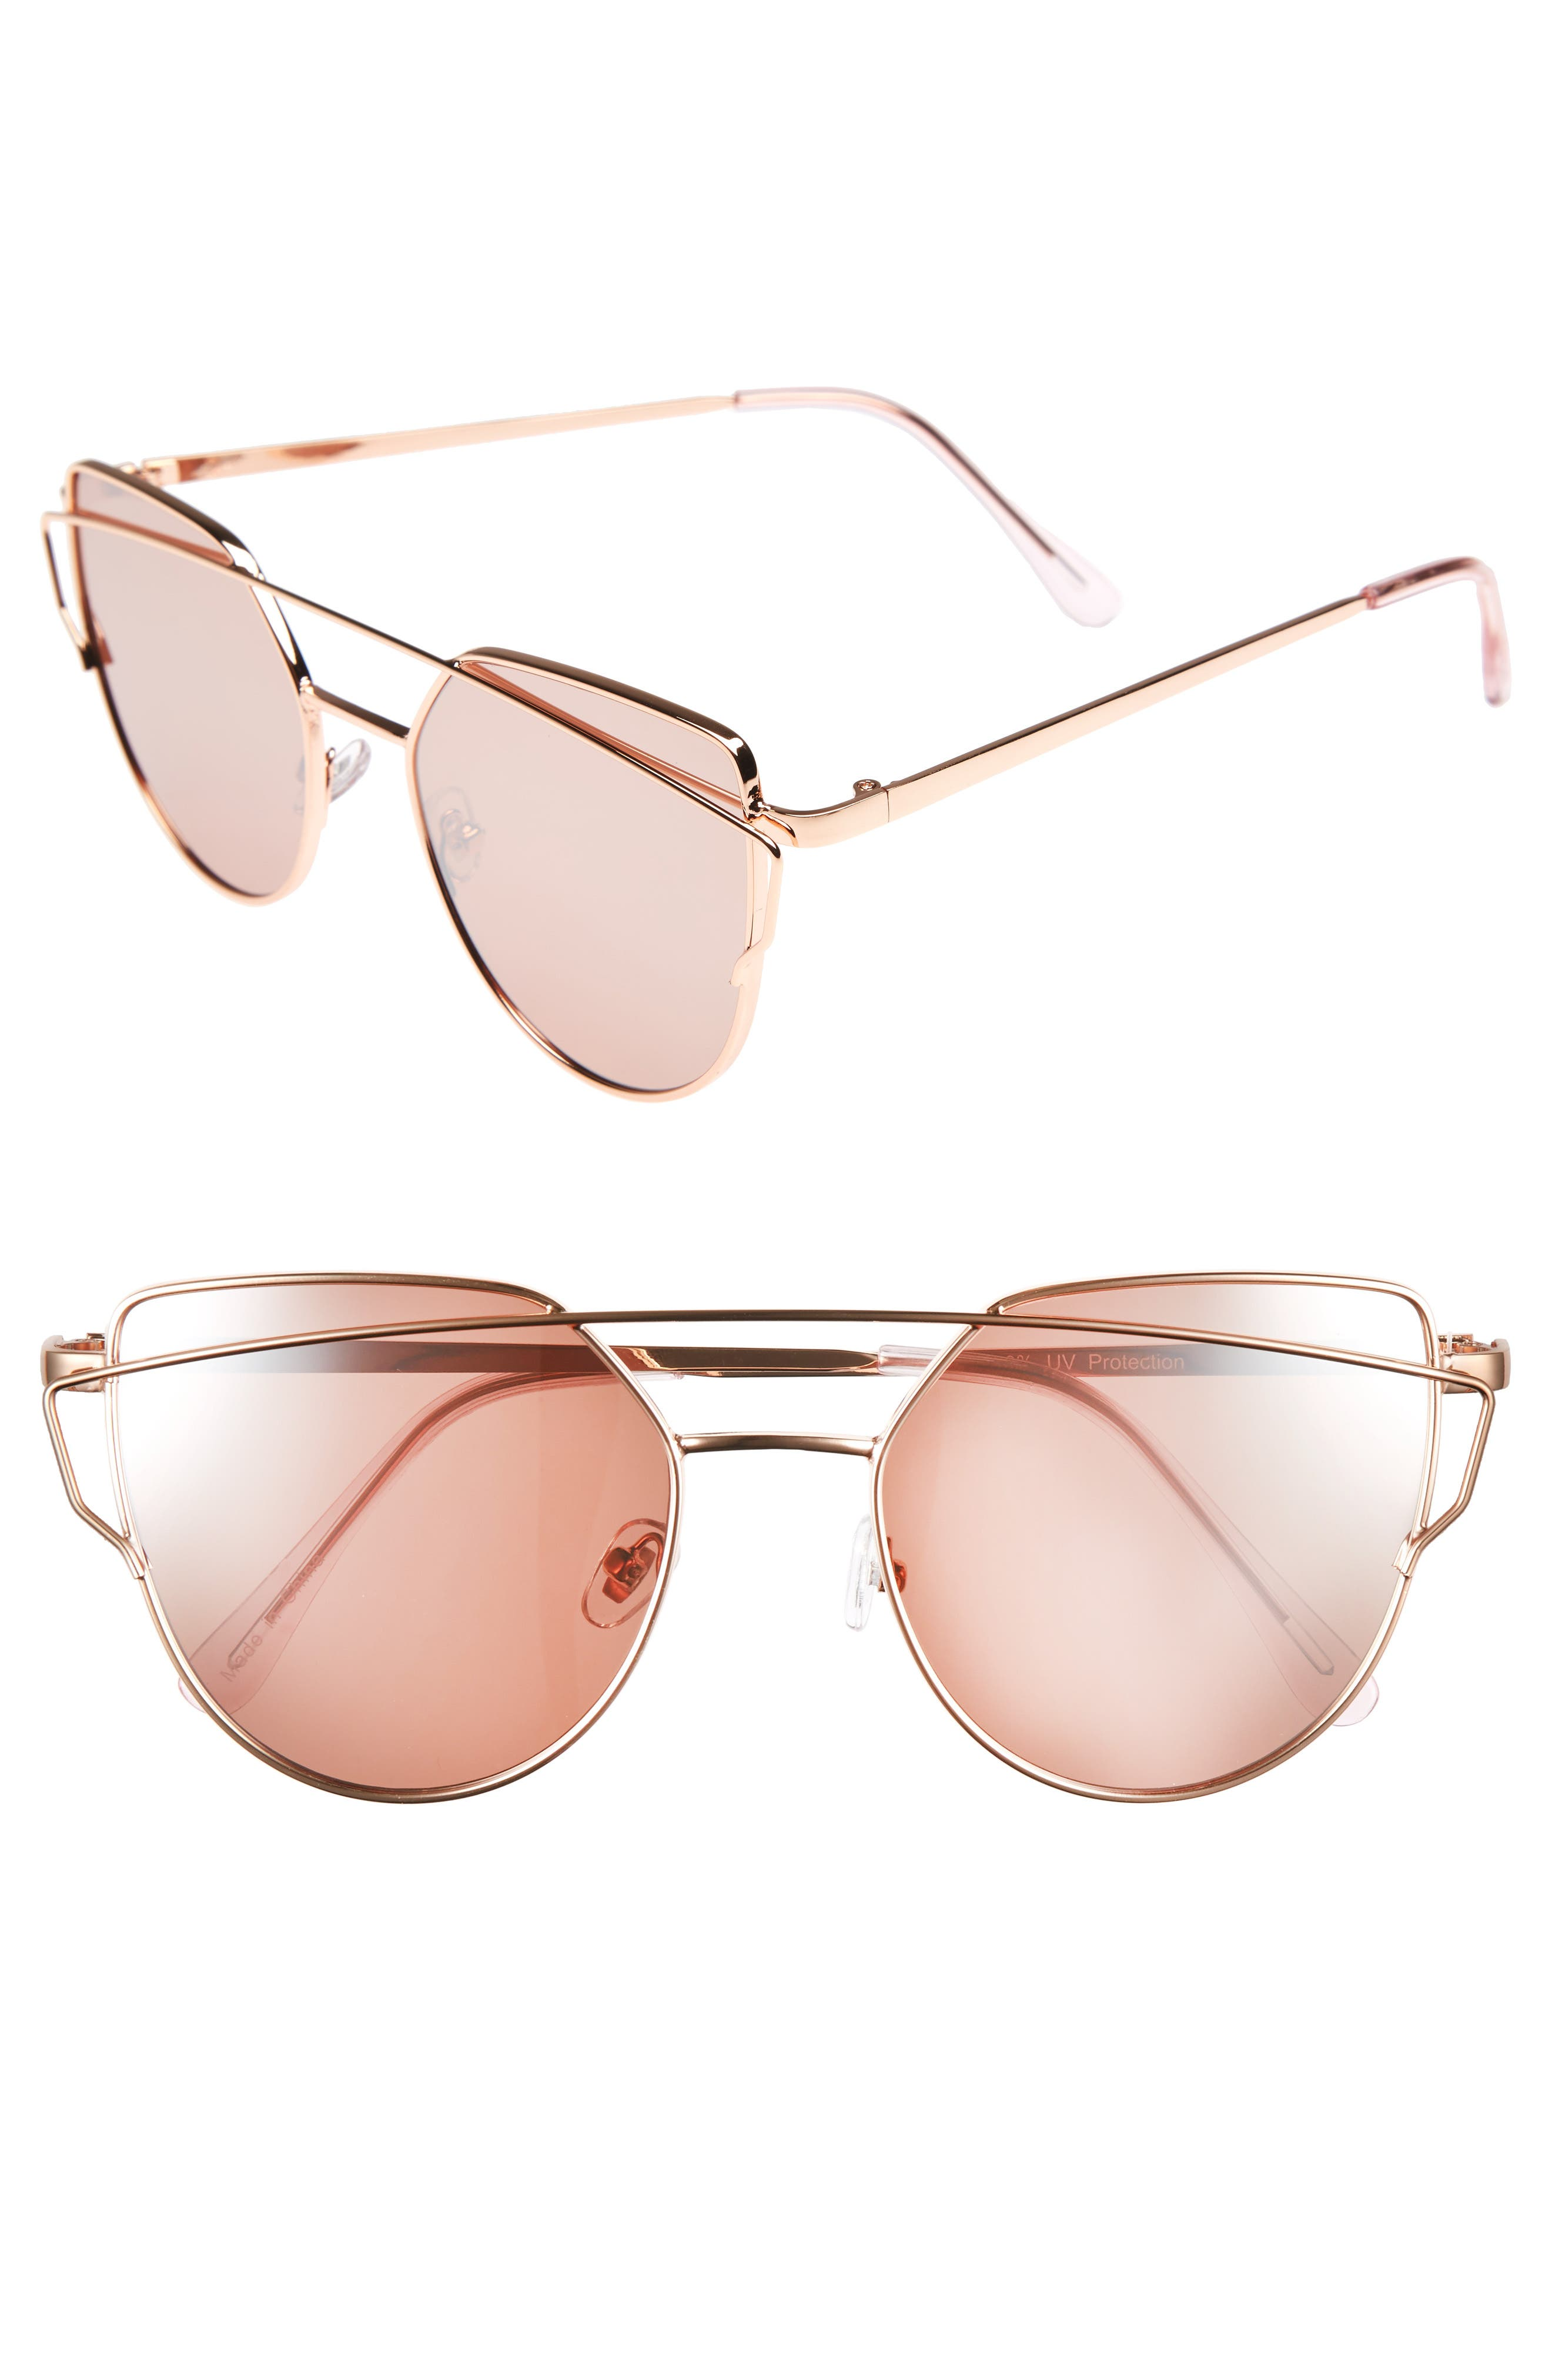 51mm Thin Brow Angular Aviator Sunglasses,                             Alternate thumbnail 13, color,